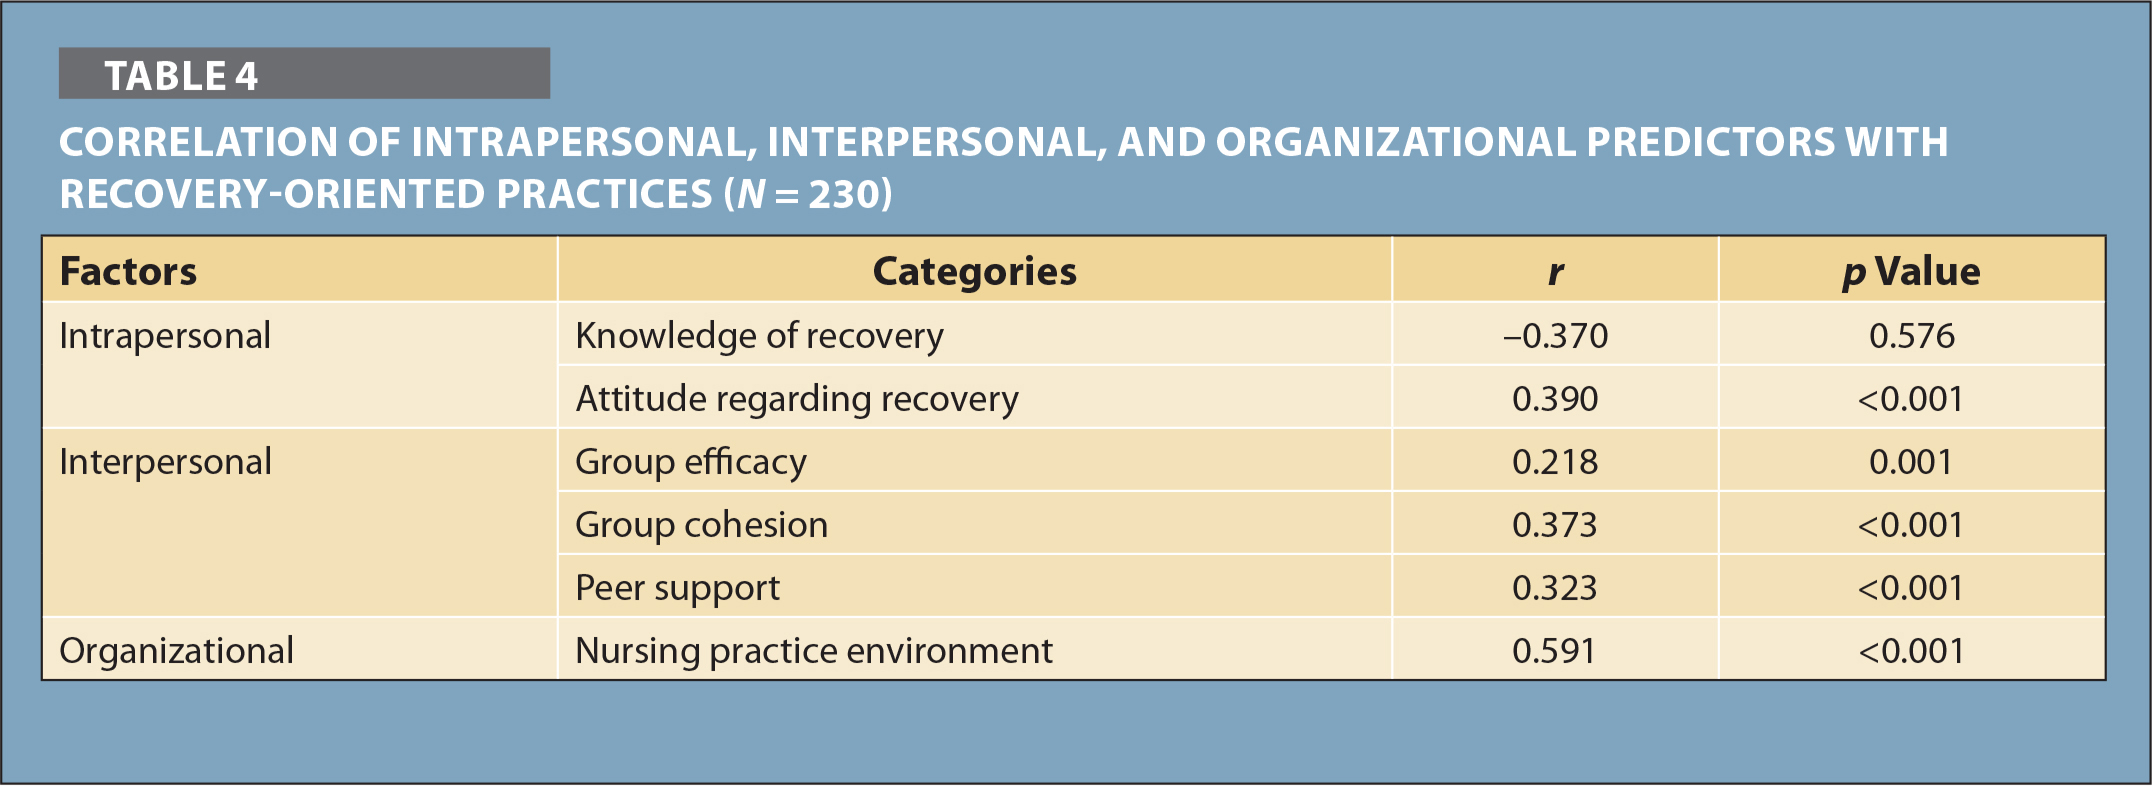 Correlation of Intrapersonal, Interpersonal, and Organizational Predictors with Recovery-Oriented Practices (N = 230)